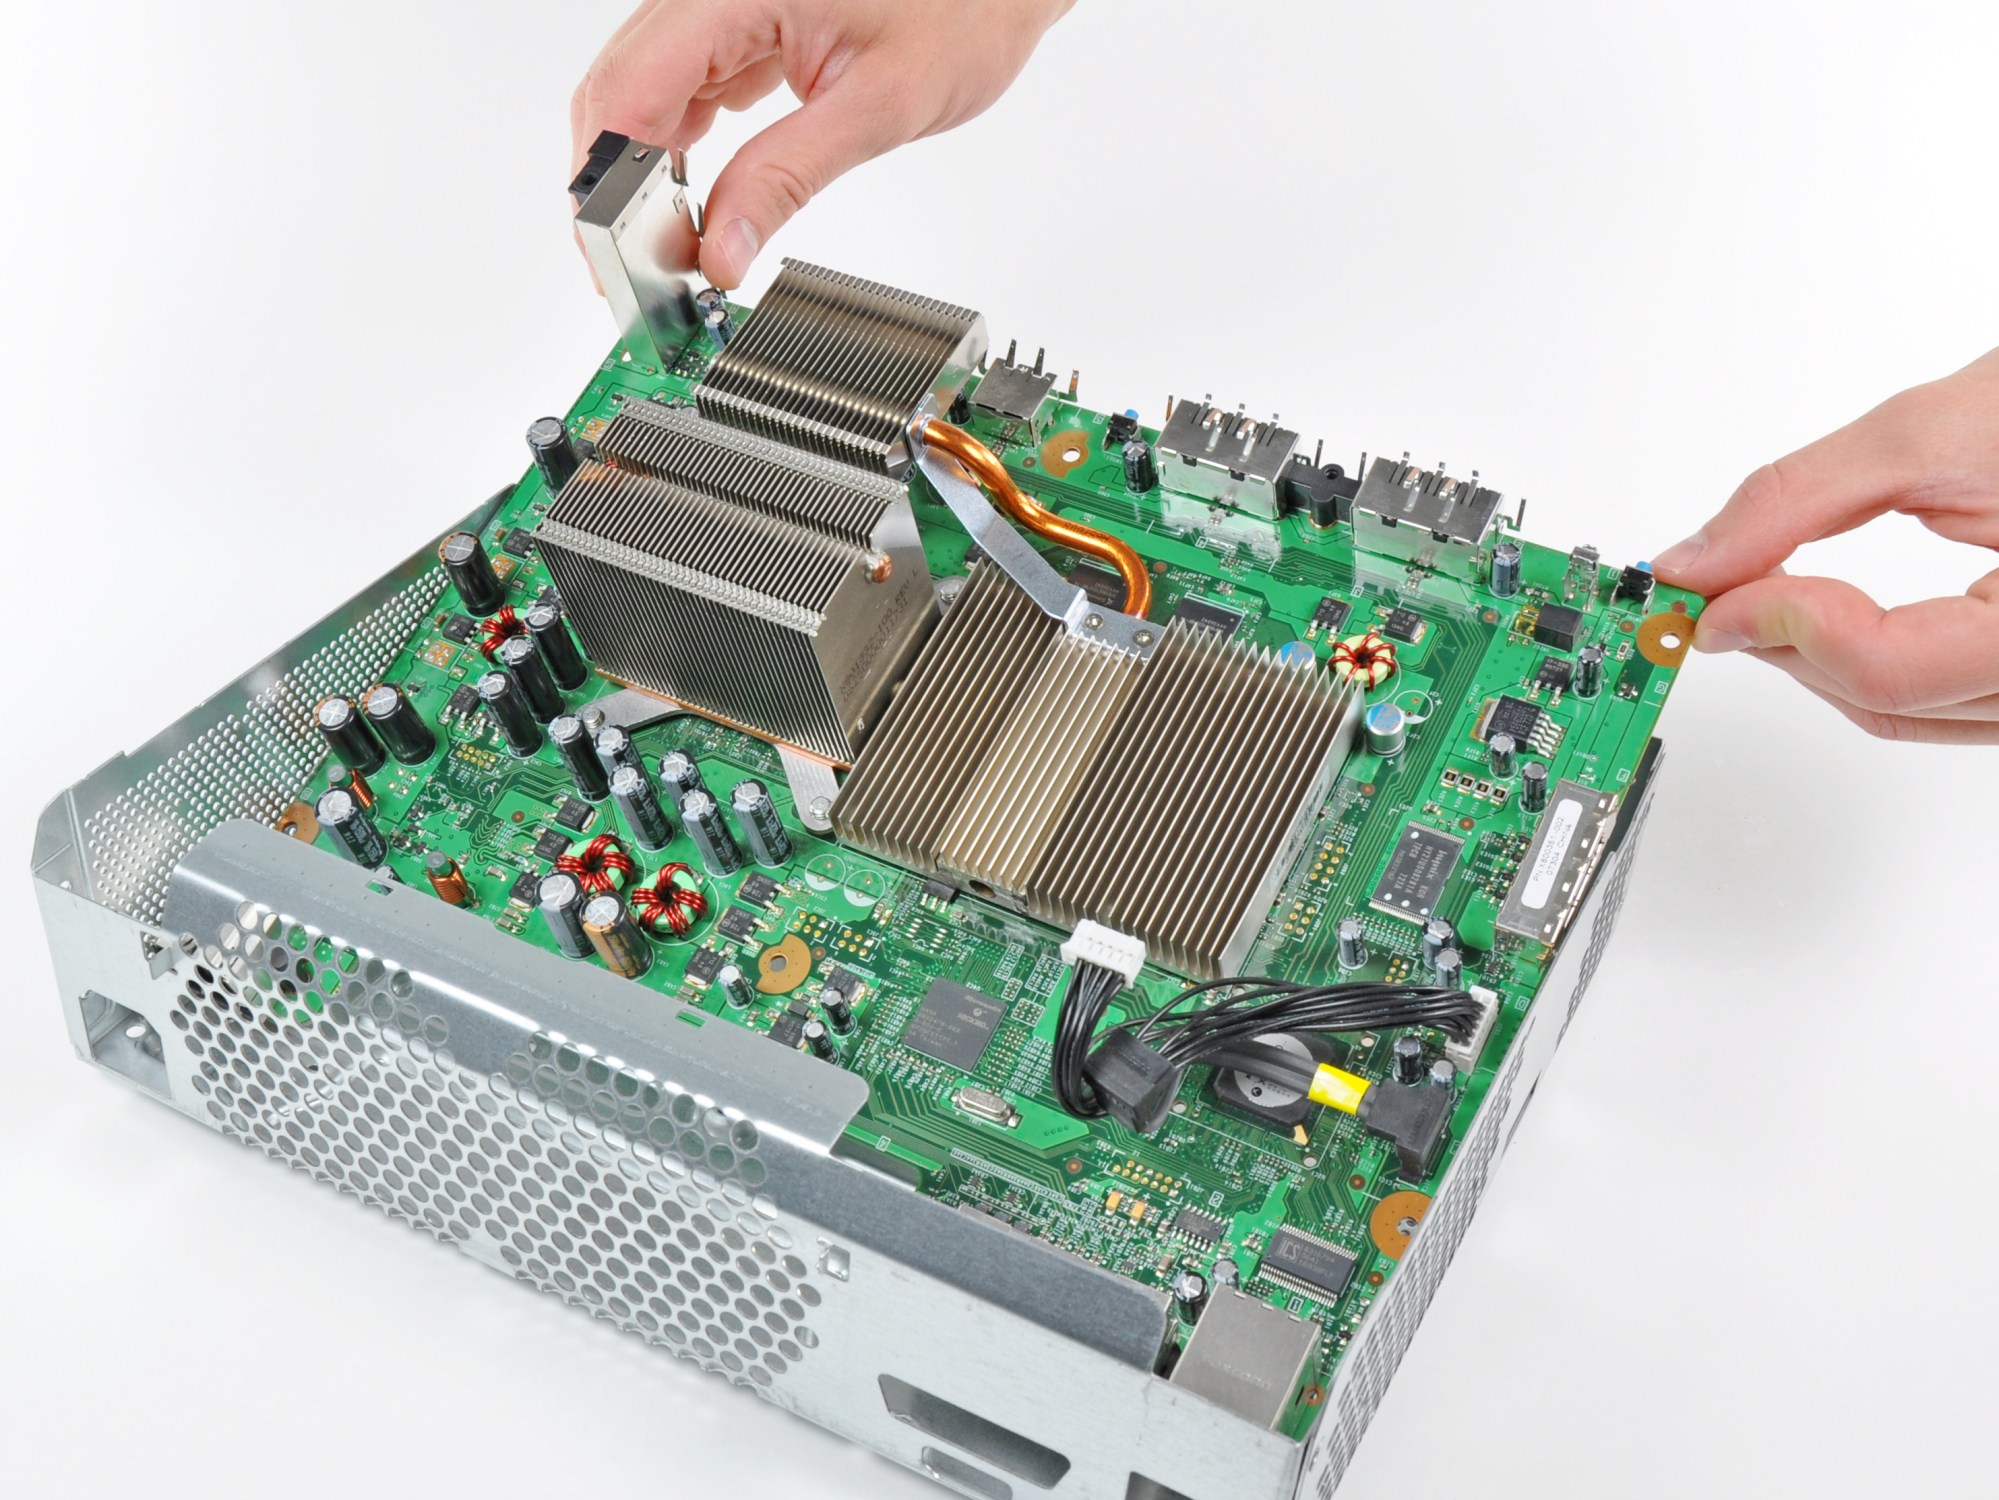 hight resolution of xbox 360 motherboard replacement ifixit repair guide rh ifixit com xbox 360 slim motherboard schematic diagram xbox 360 controller motherboard diagram